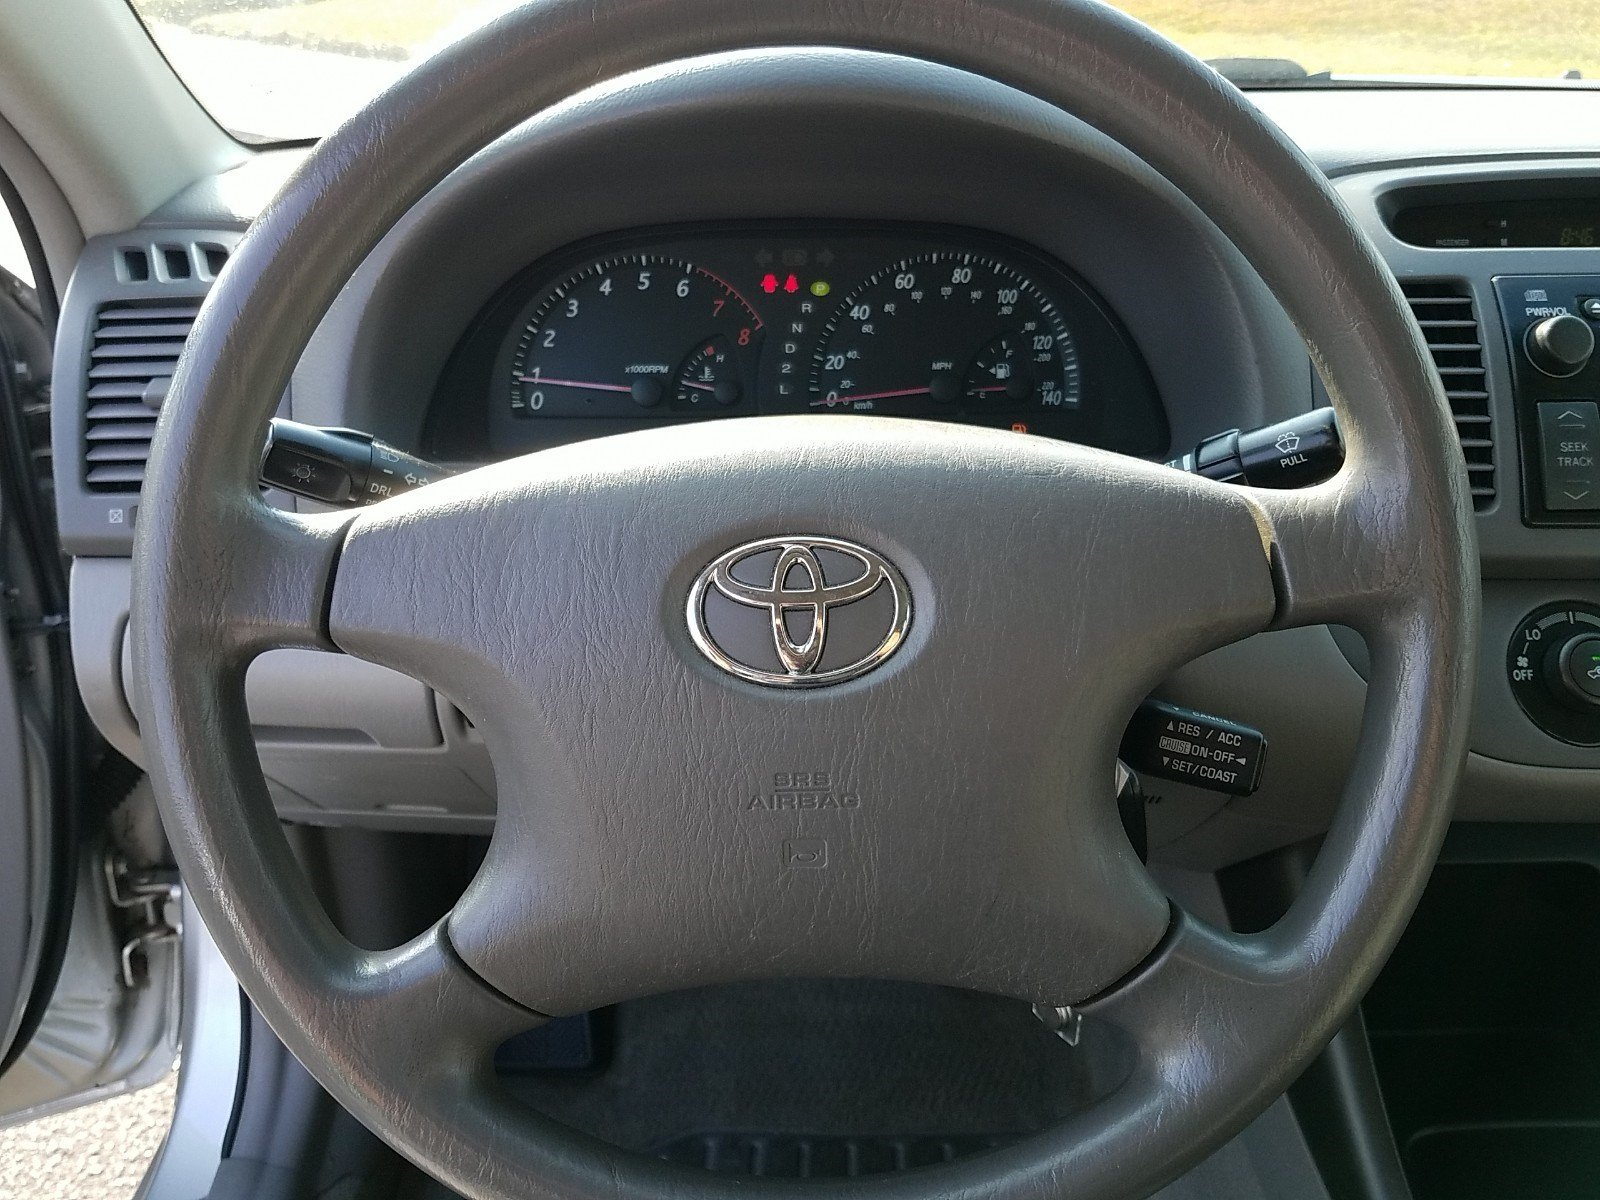 Pre-Owned 2004 Toyota Camry STD